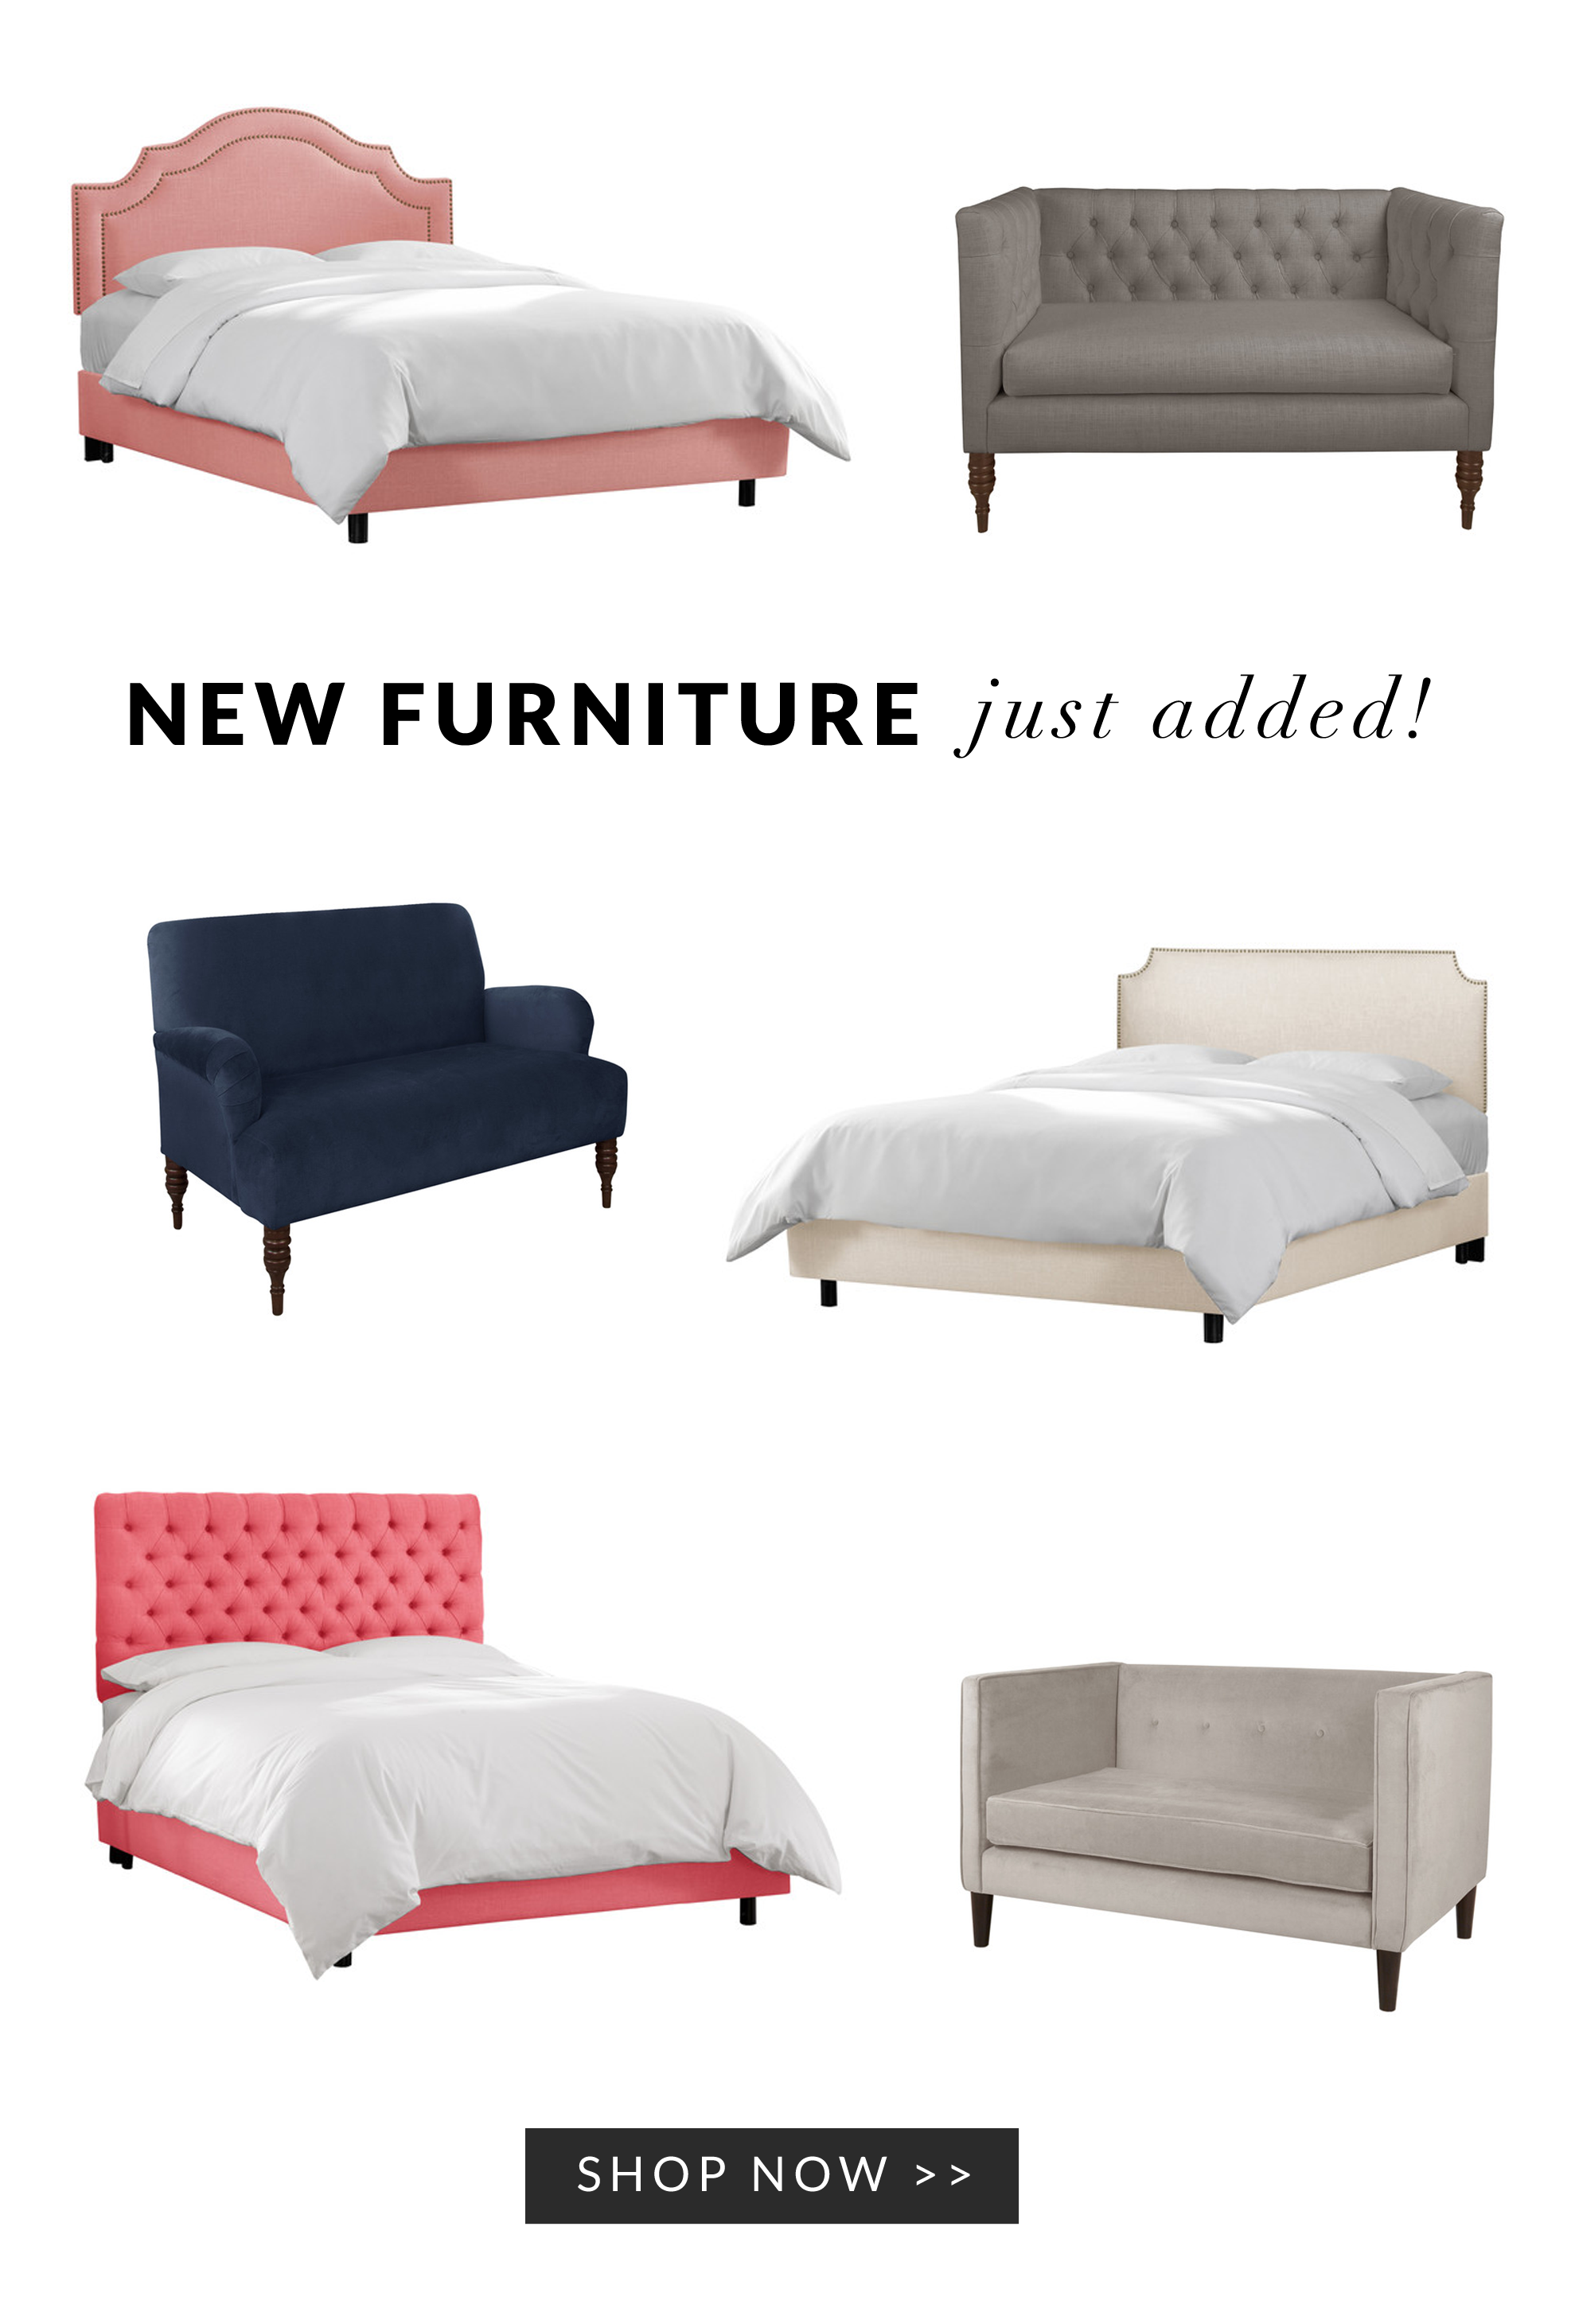 newfurnitureEMAIL